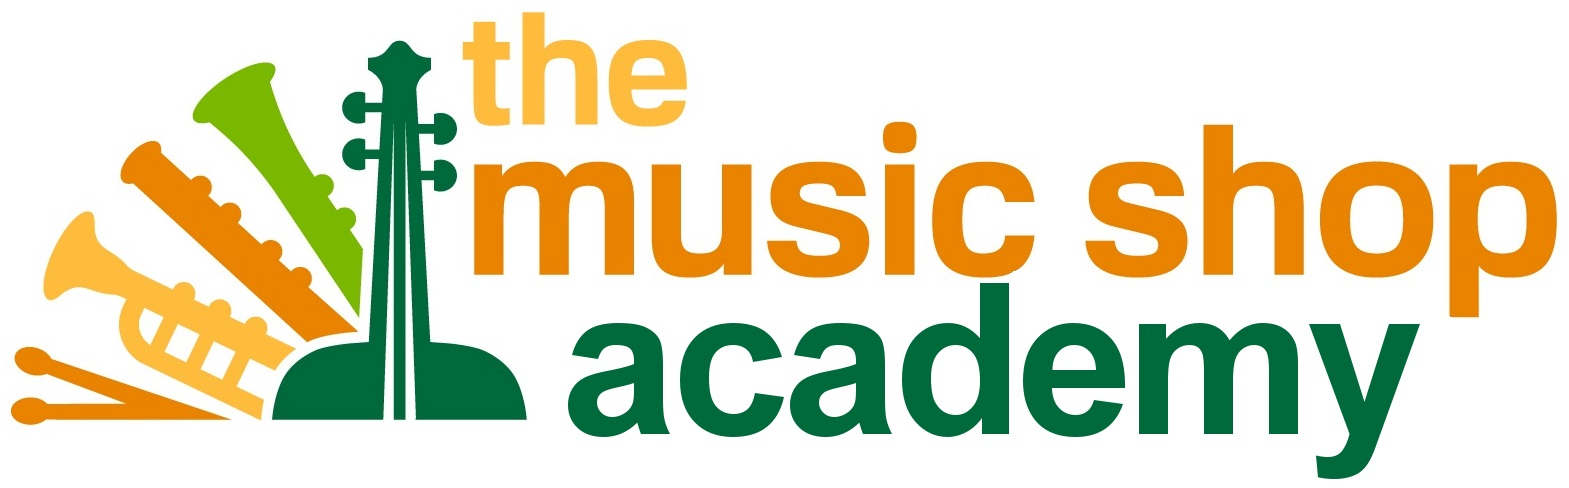 The Music Shop Academy